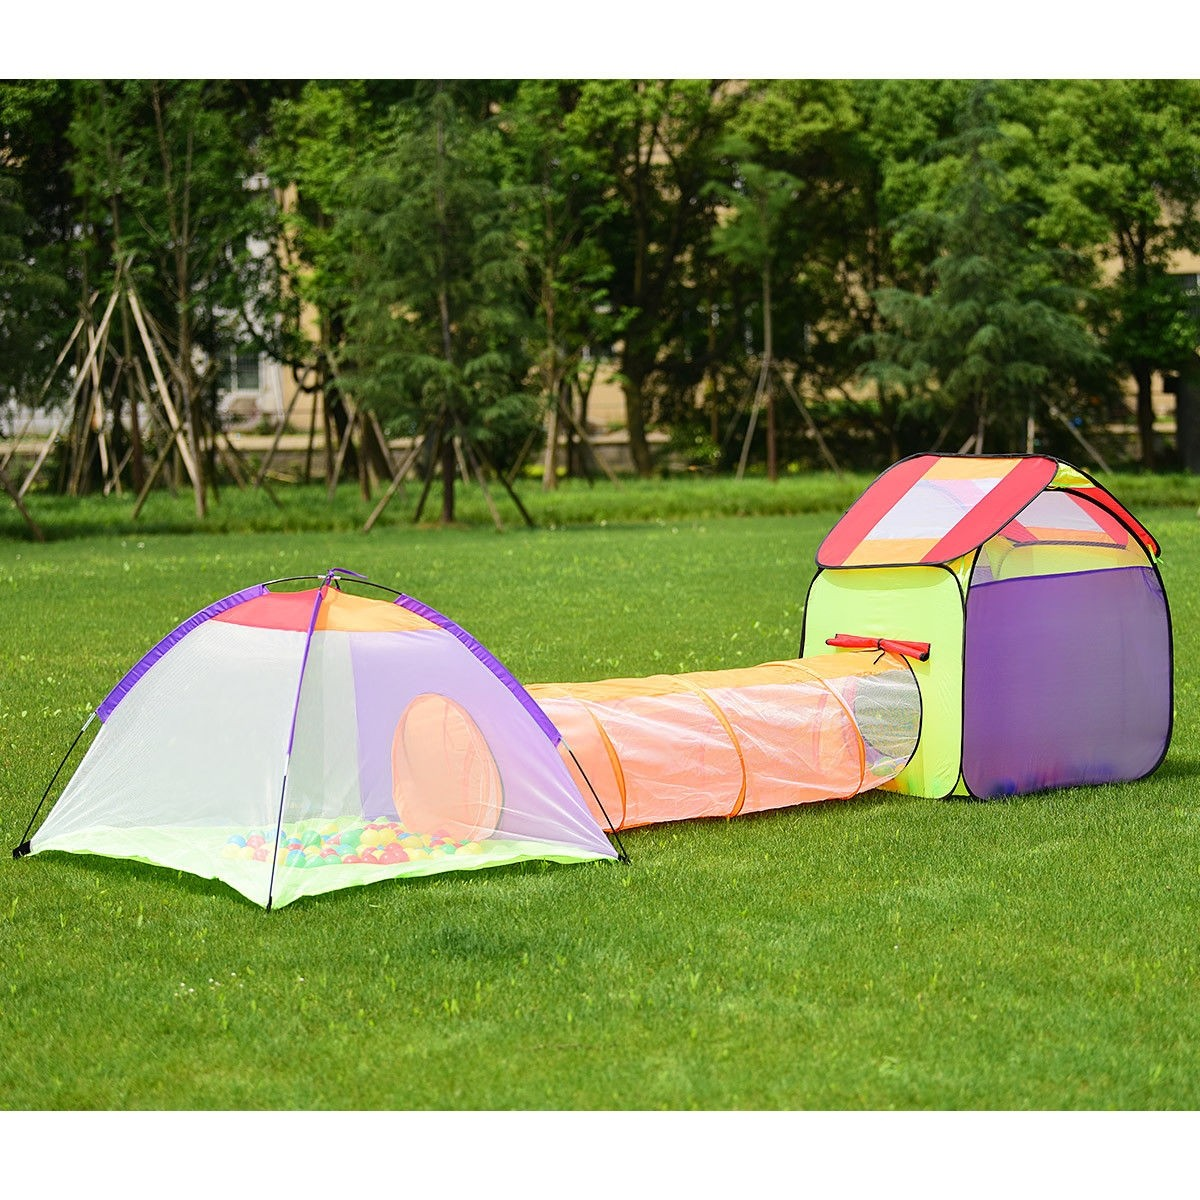 3 In 1 Folding Pop Up Kids Play Tent Playhouse - Play ...